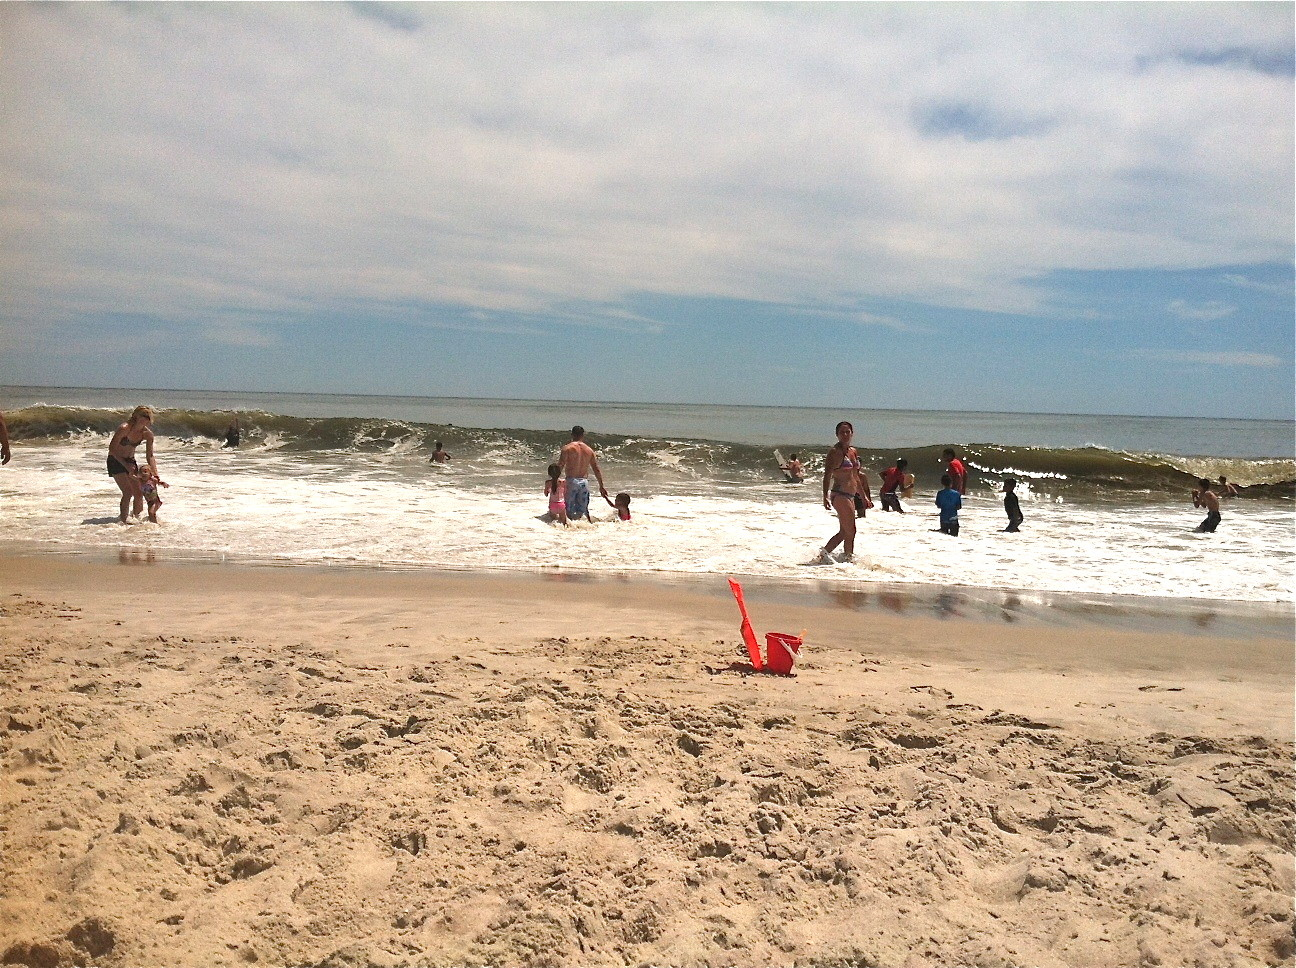 Jones Beach, July 2014  Lorraine & John had a great swim!